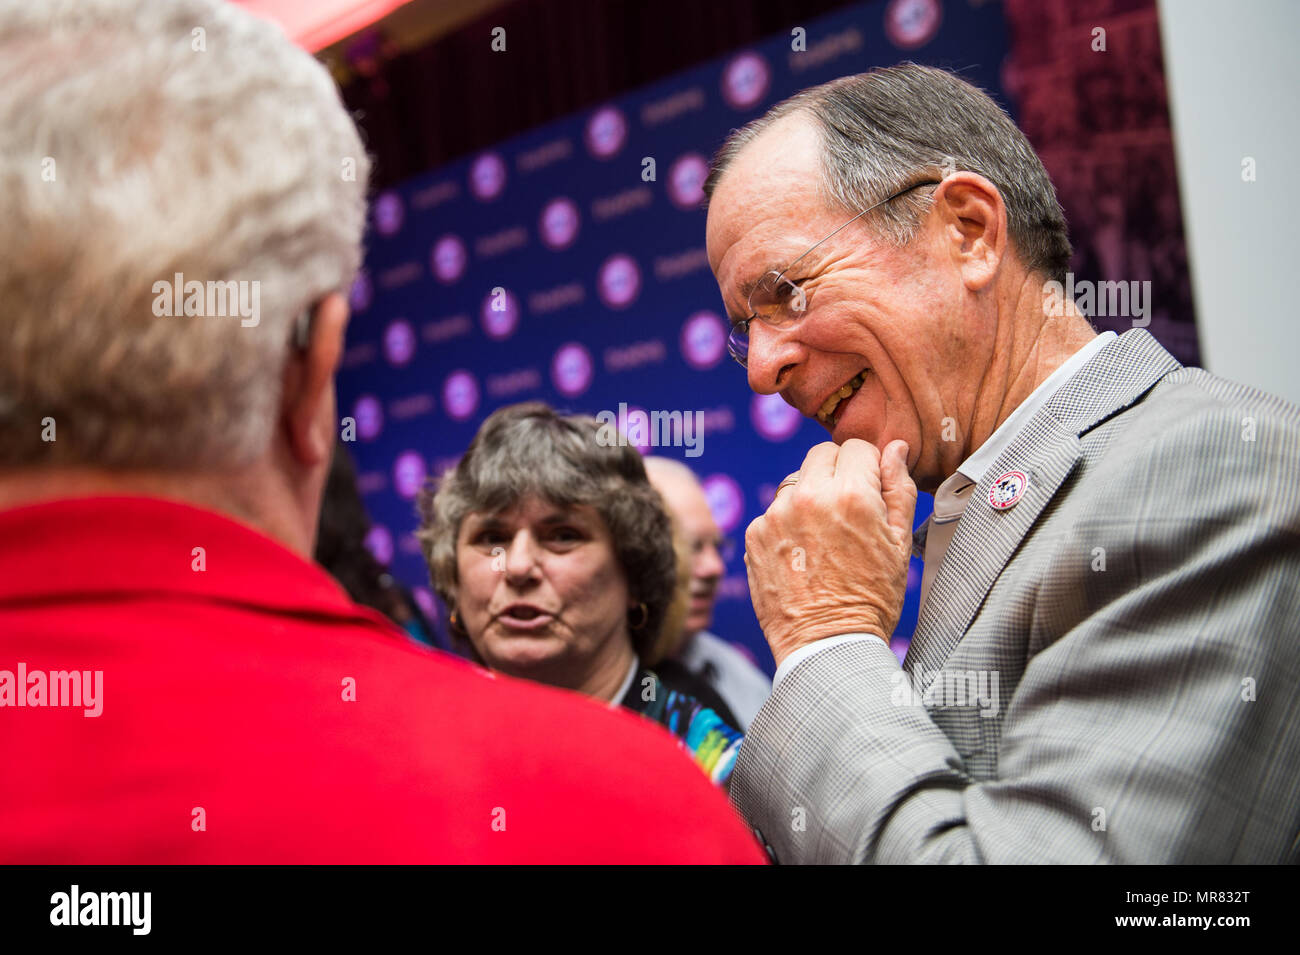 Retired U.S. Navy Adm. Mike Mullen, former Chairman of the Joint Chiefs of Staff and Honorary TAPS Board member,meets surviving family members after the Tragedy Assistance Program for Survivors (TAPS) Grand Banquet at the 23rd TAPS National Military Survivor Seminar and Good Grief Camp in Arlington, Va., May 27, 2017. TAPS brings surviving family members together at the nation's capital during Memorial Day weekend to participate in seminars, workshops, and activities that support and honor their sacrifice. (DoD Photo by U.S. Army Sgt. James K. McCann) - Stock Image